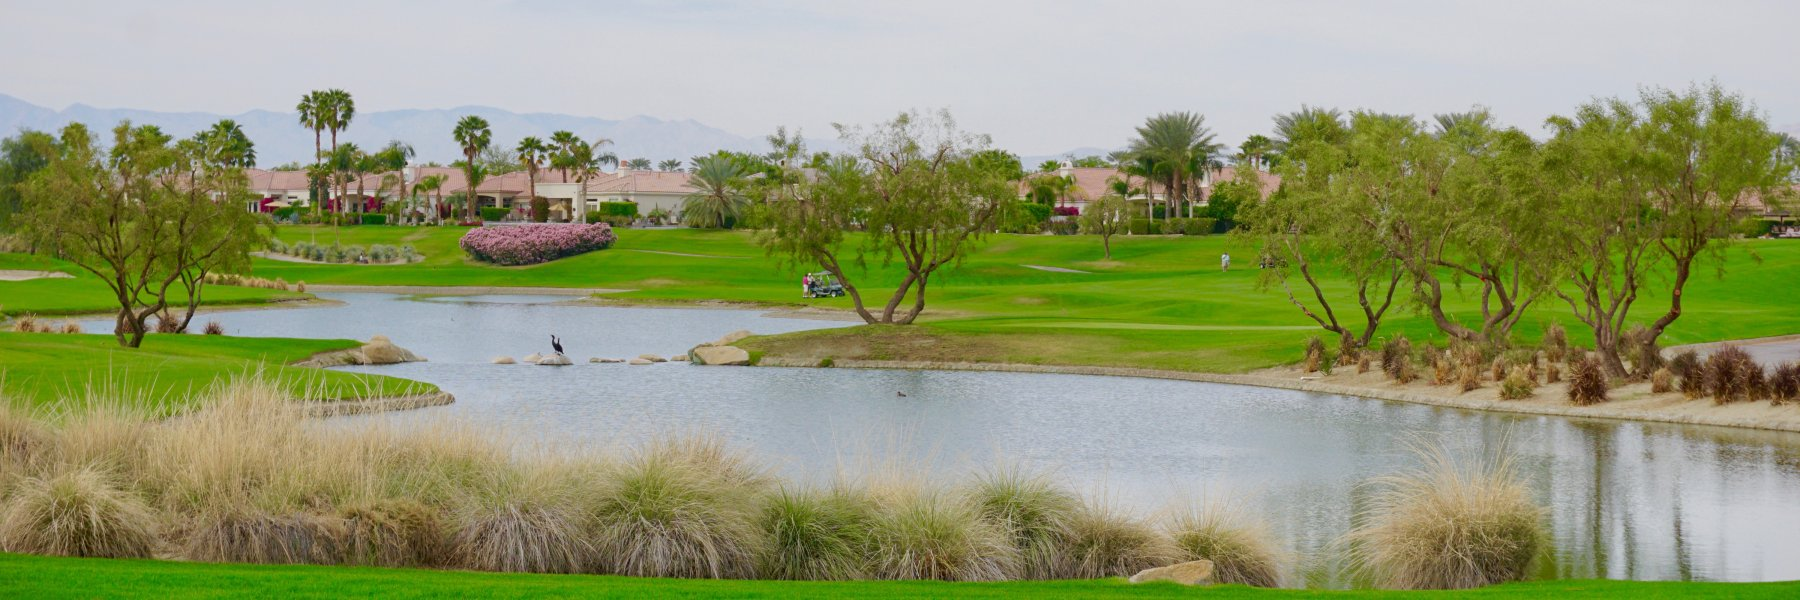 Mountain View Country Club is a community of homes in La Quinta California